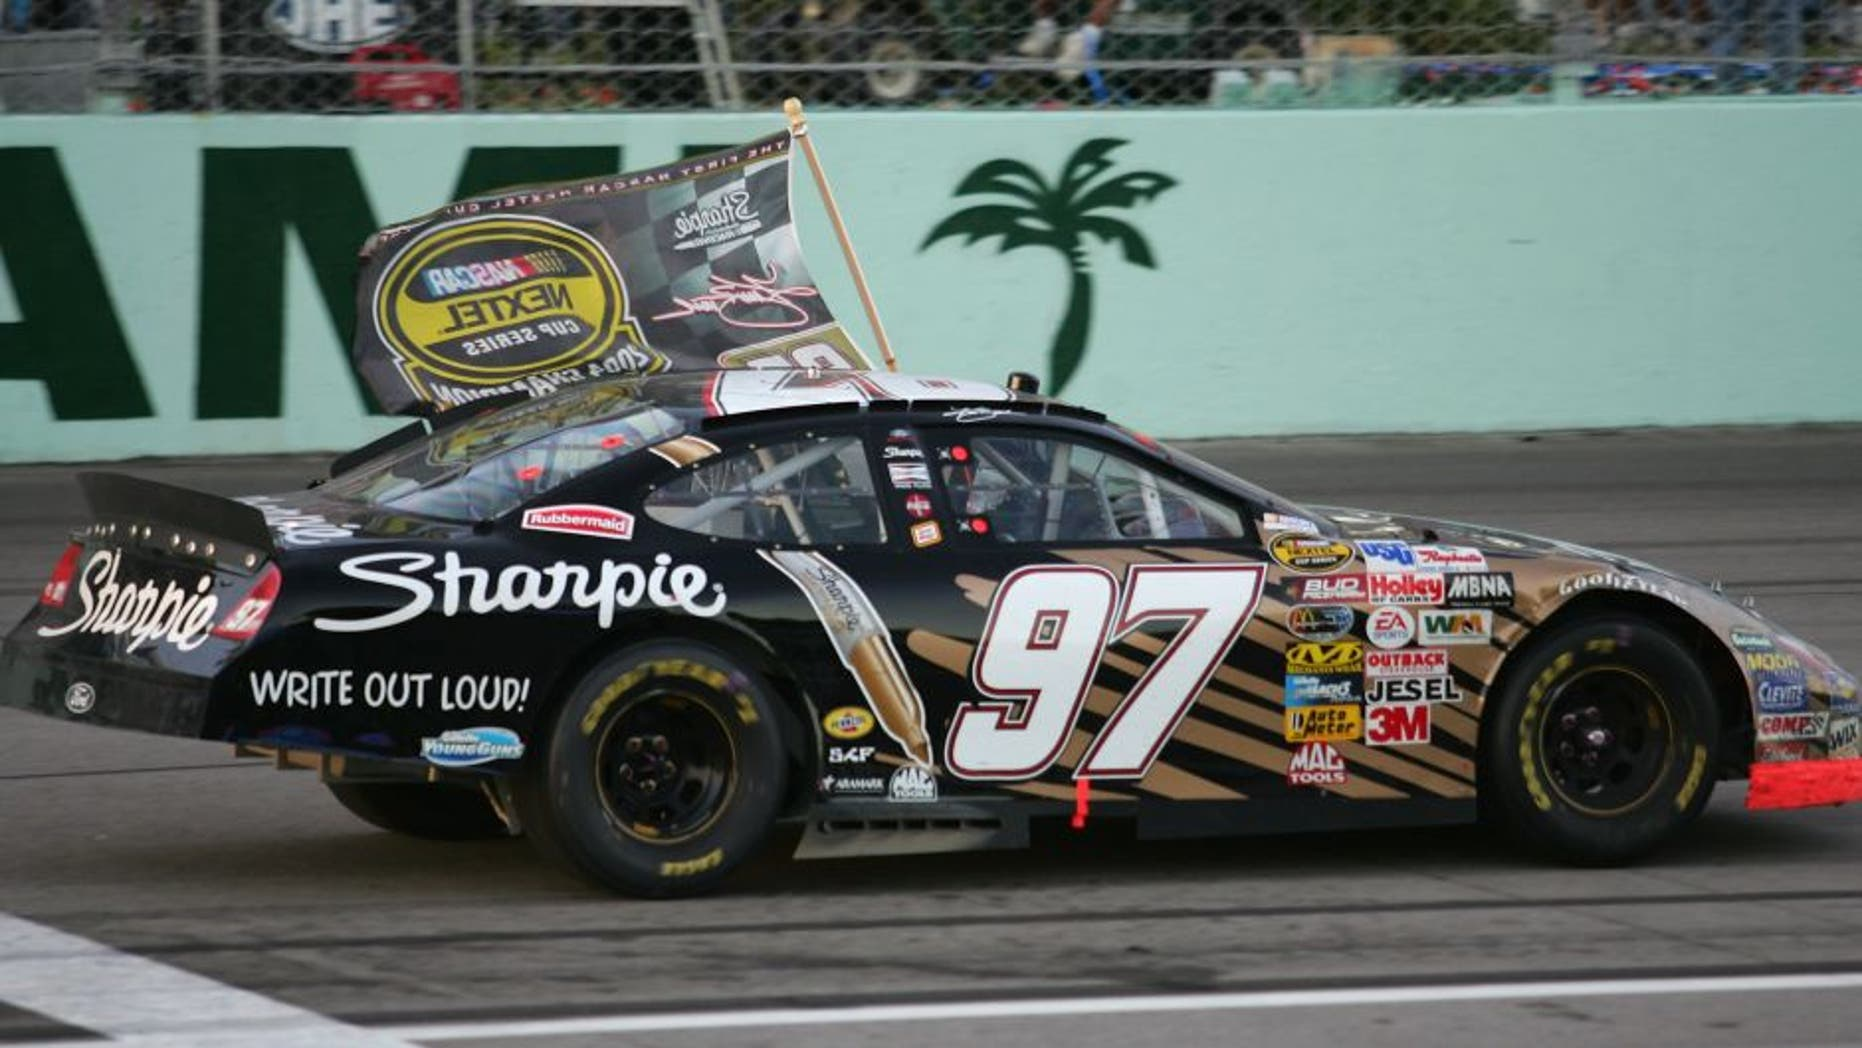 HOMESTEAD, FL - NOVEMBER 21: Kurt Busch, driver of the #97 Roush Racing Sharpie Ford, celebrates after winning the NASCAR Nextel Cup Series Championship at the Ford 400 on November 21, 2004 at the Homestead Miami Speedway in Homestead, Florida. (Photo by Robert Laberge/Getty Images)